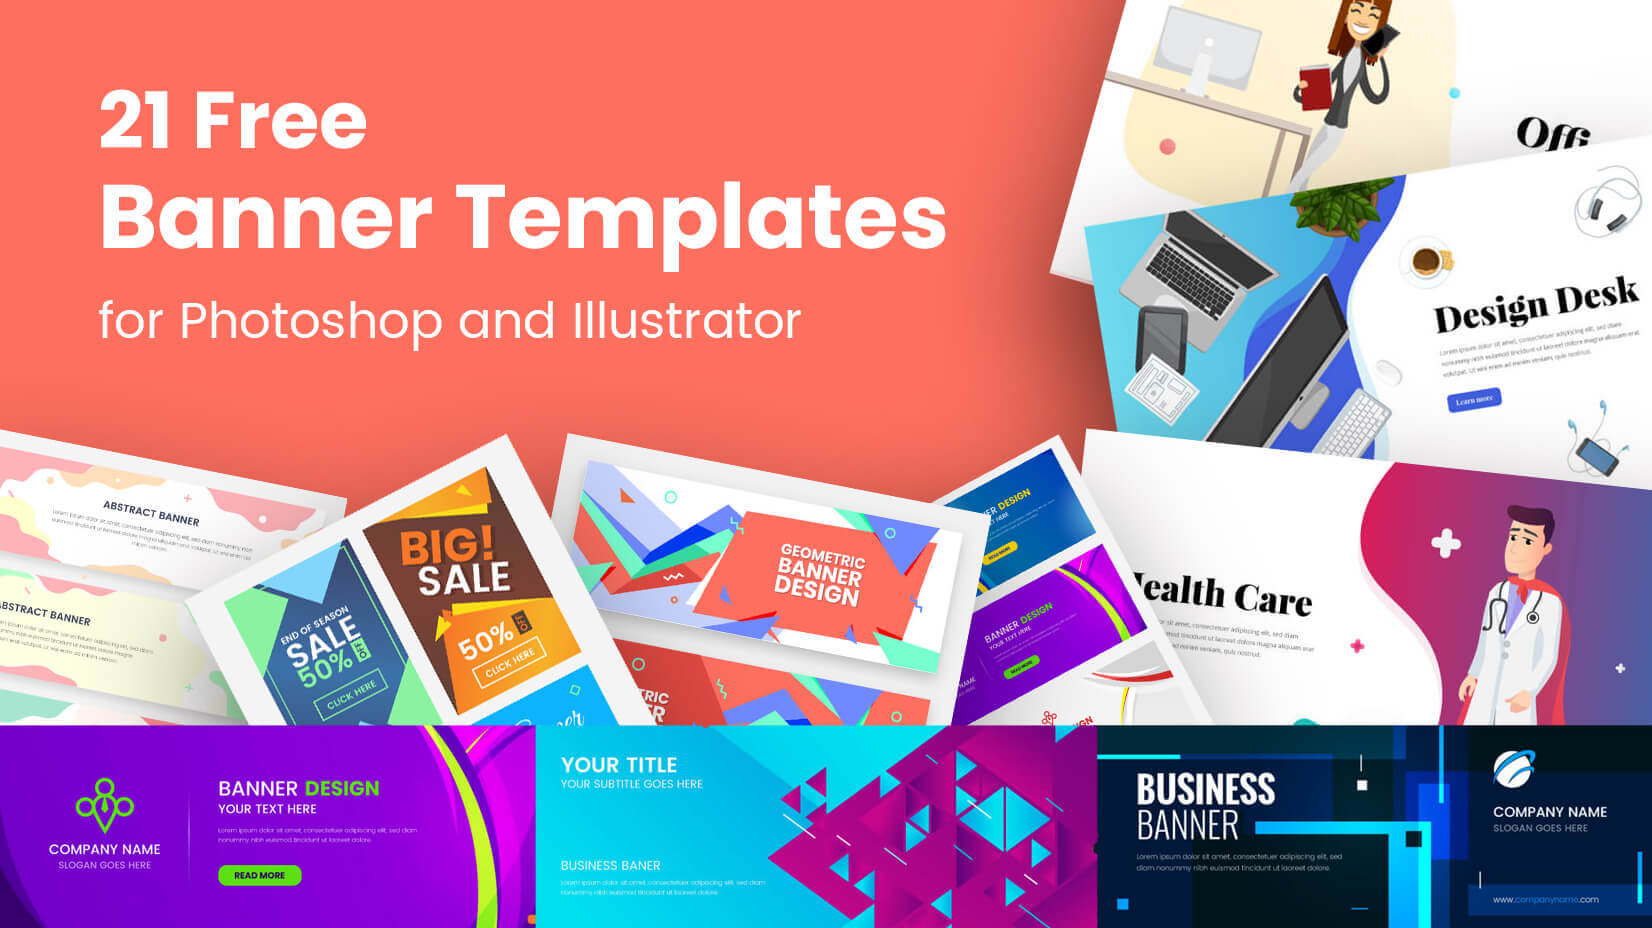 21 Free Banner Templates For Photoshop And Illustrator With Banner Template For Photoshop